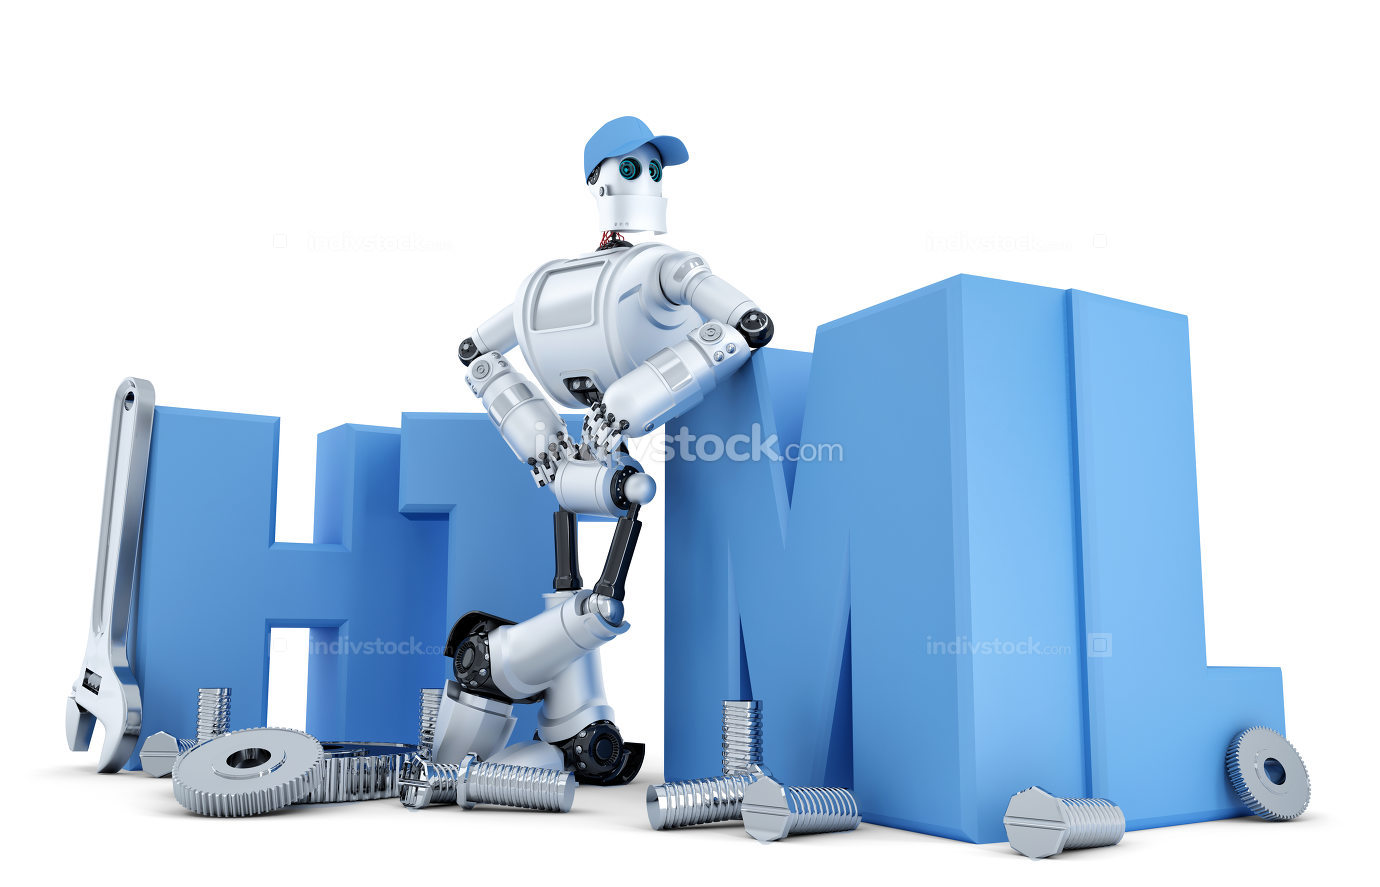 Robot with HTML sign. Technology concept. Isolated. Containsclipping path